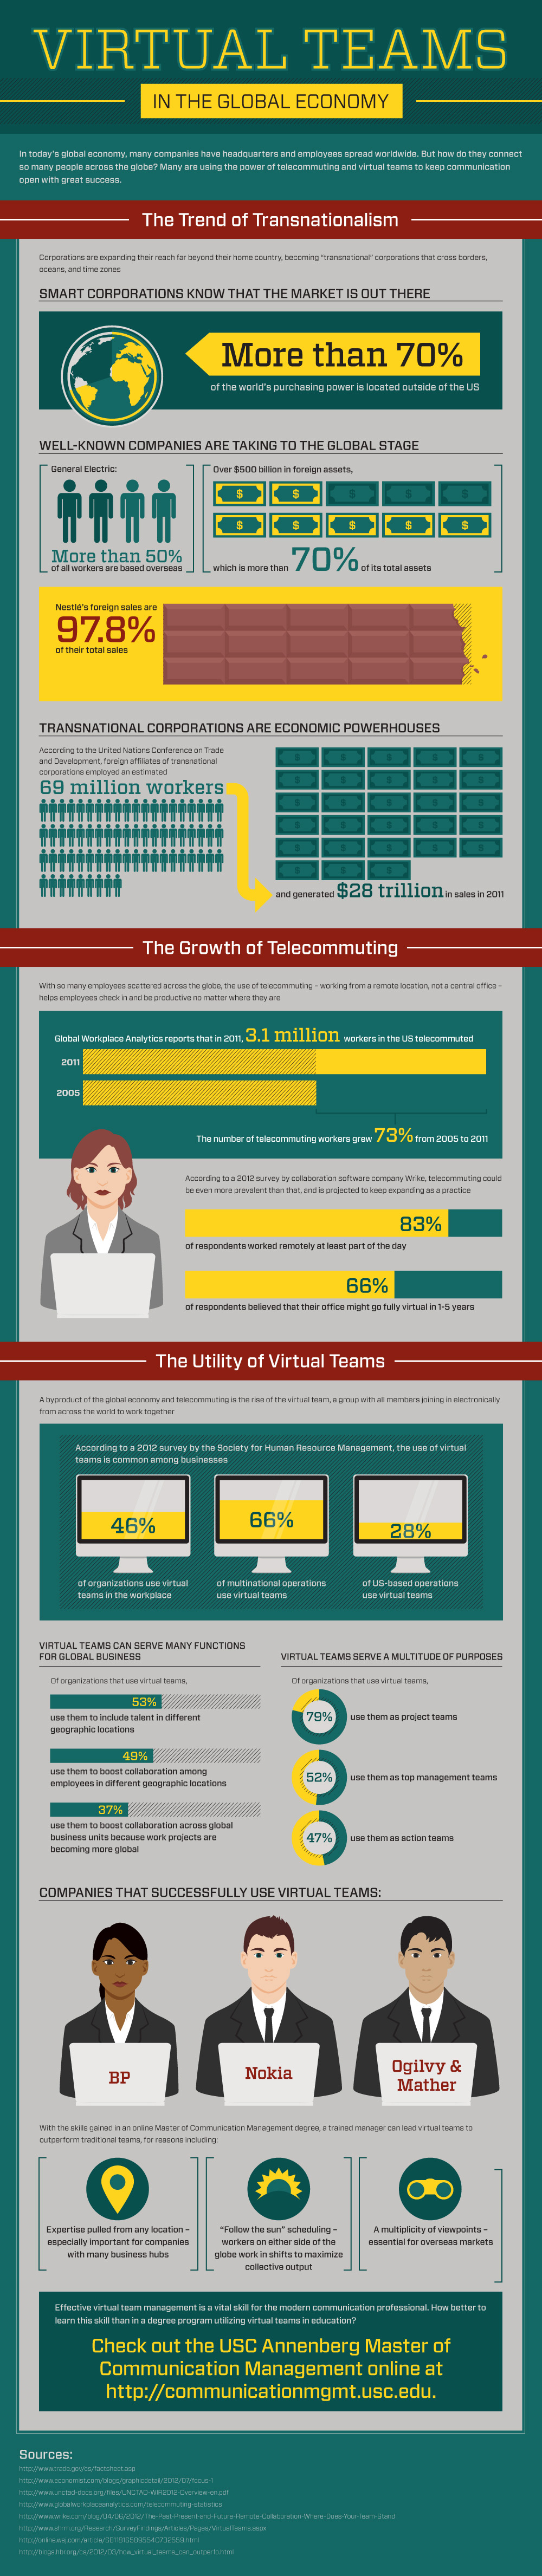 Virtual teams in the global economy